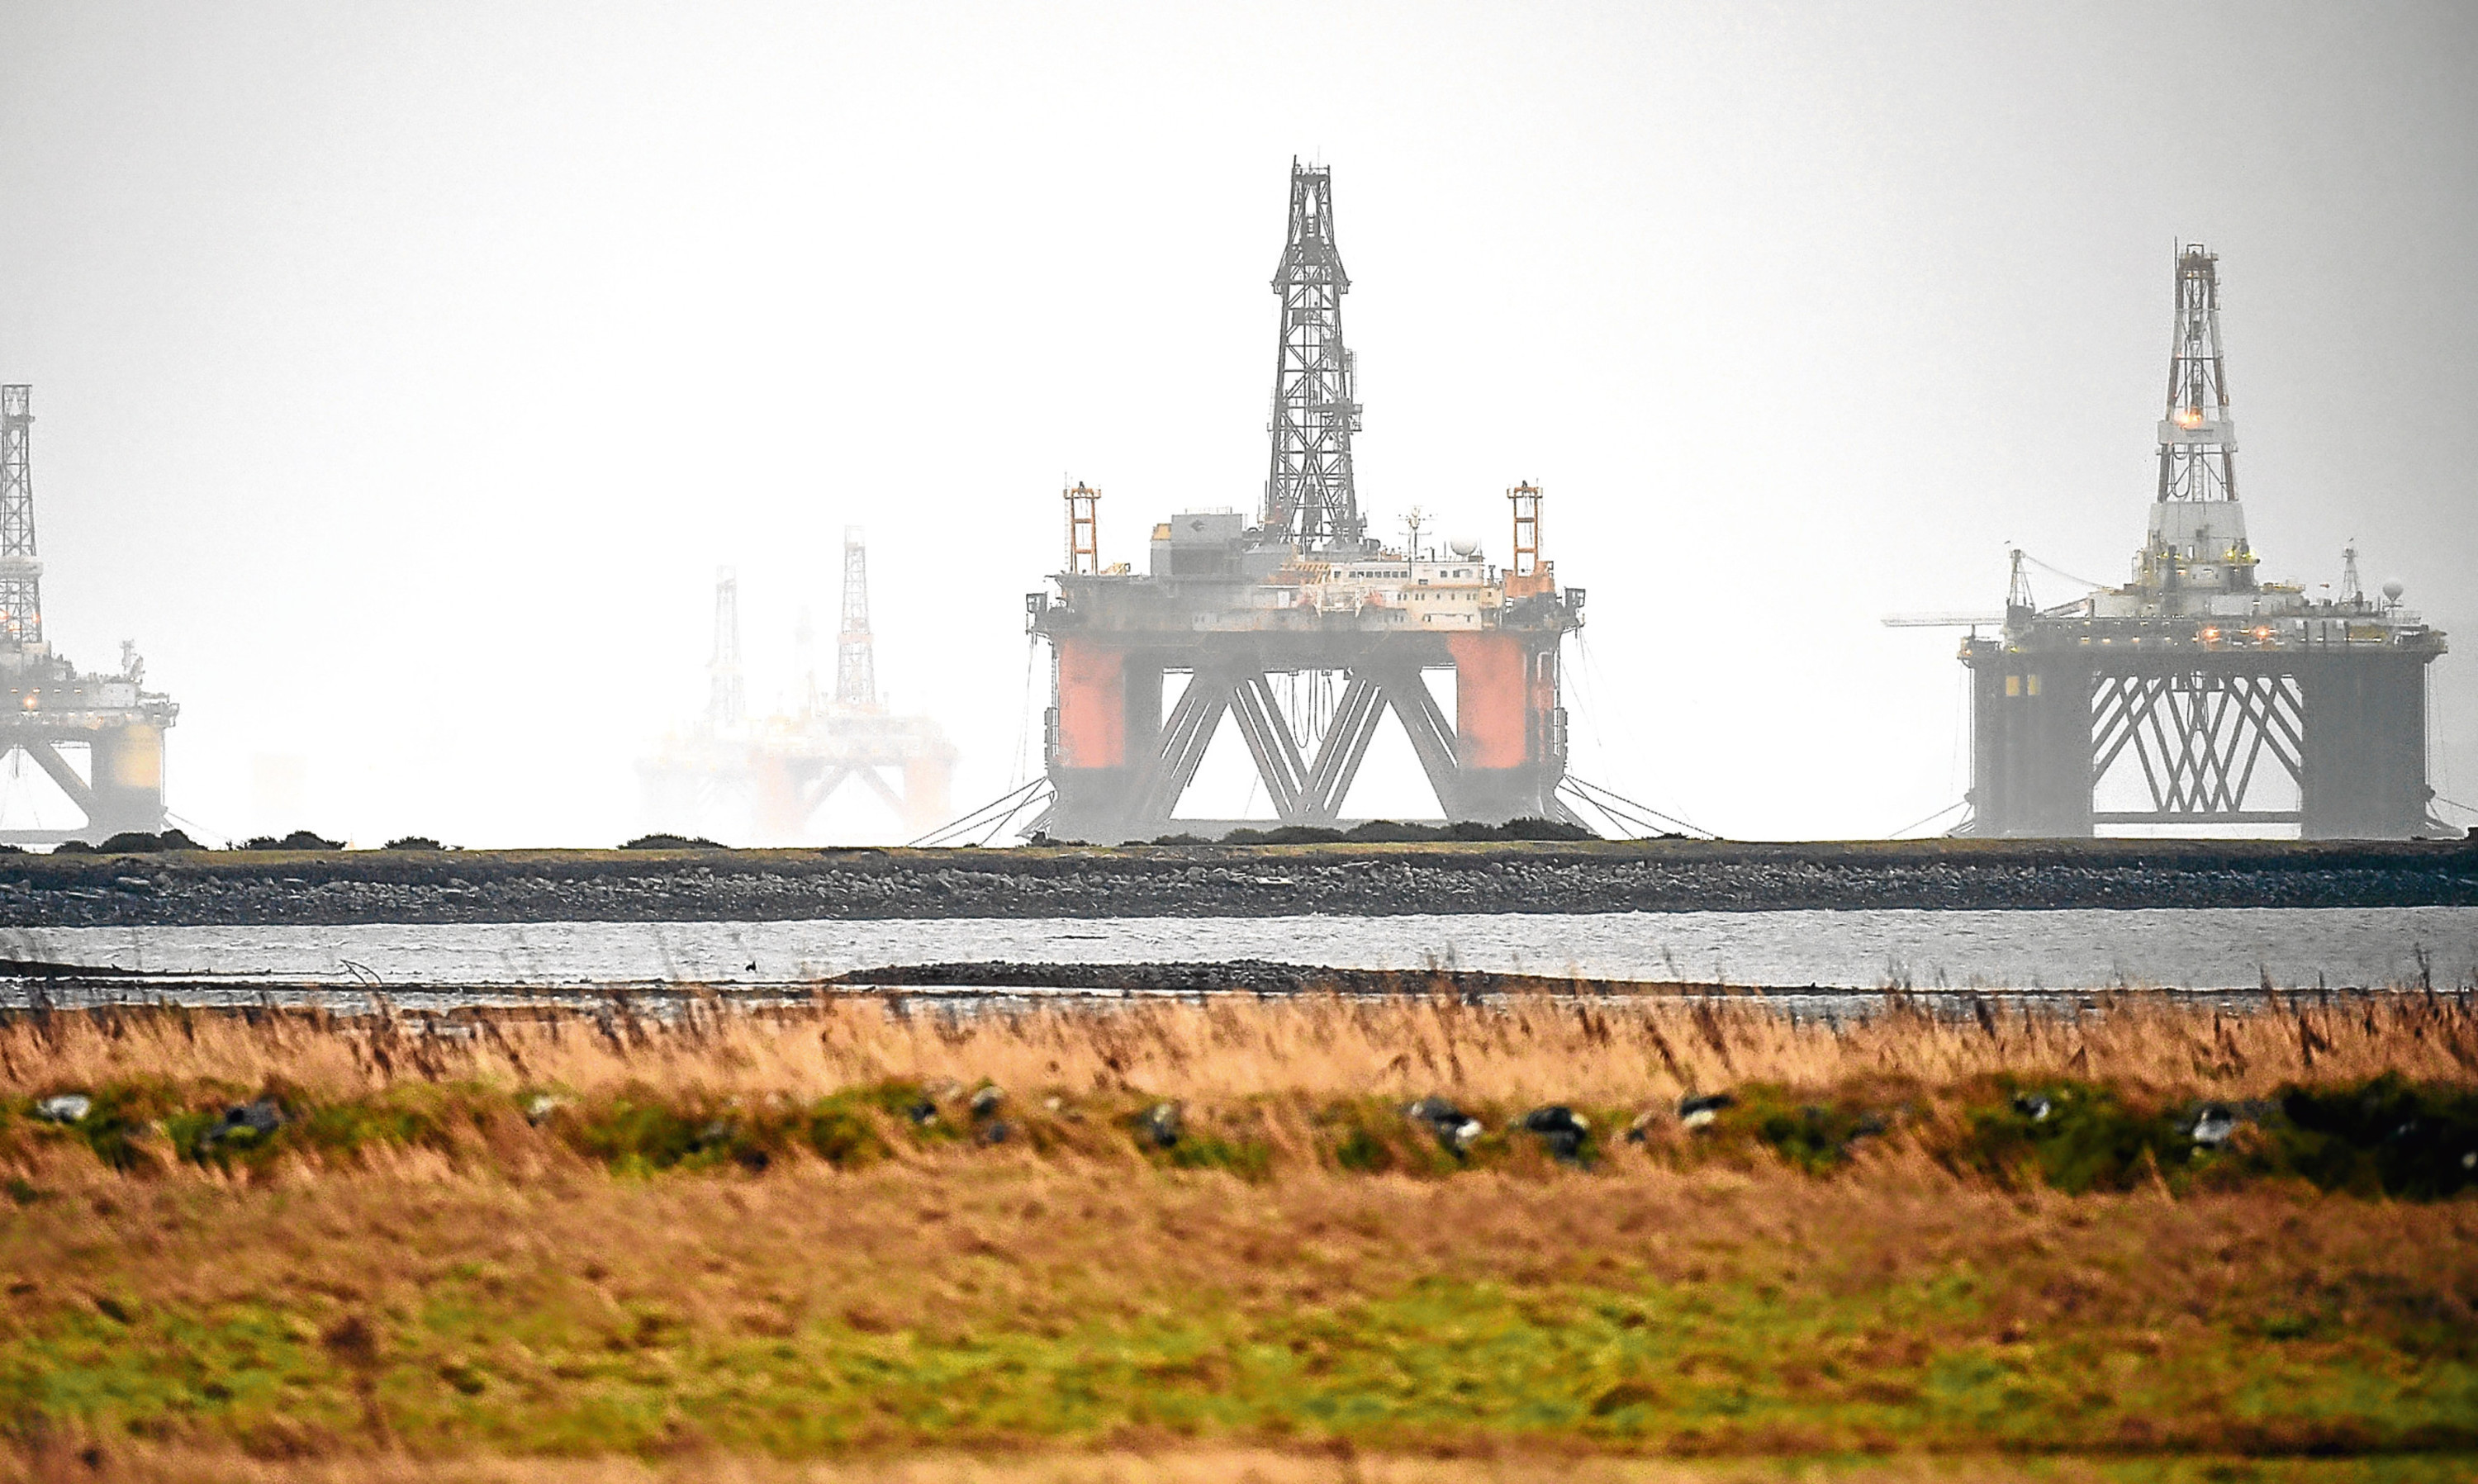 Oil installations laid up in the Cromarty Firth.